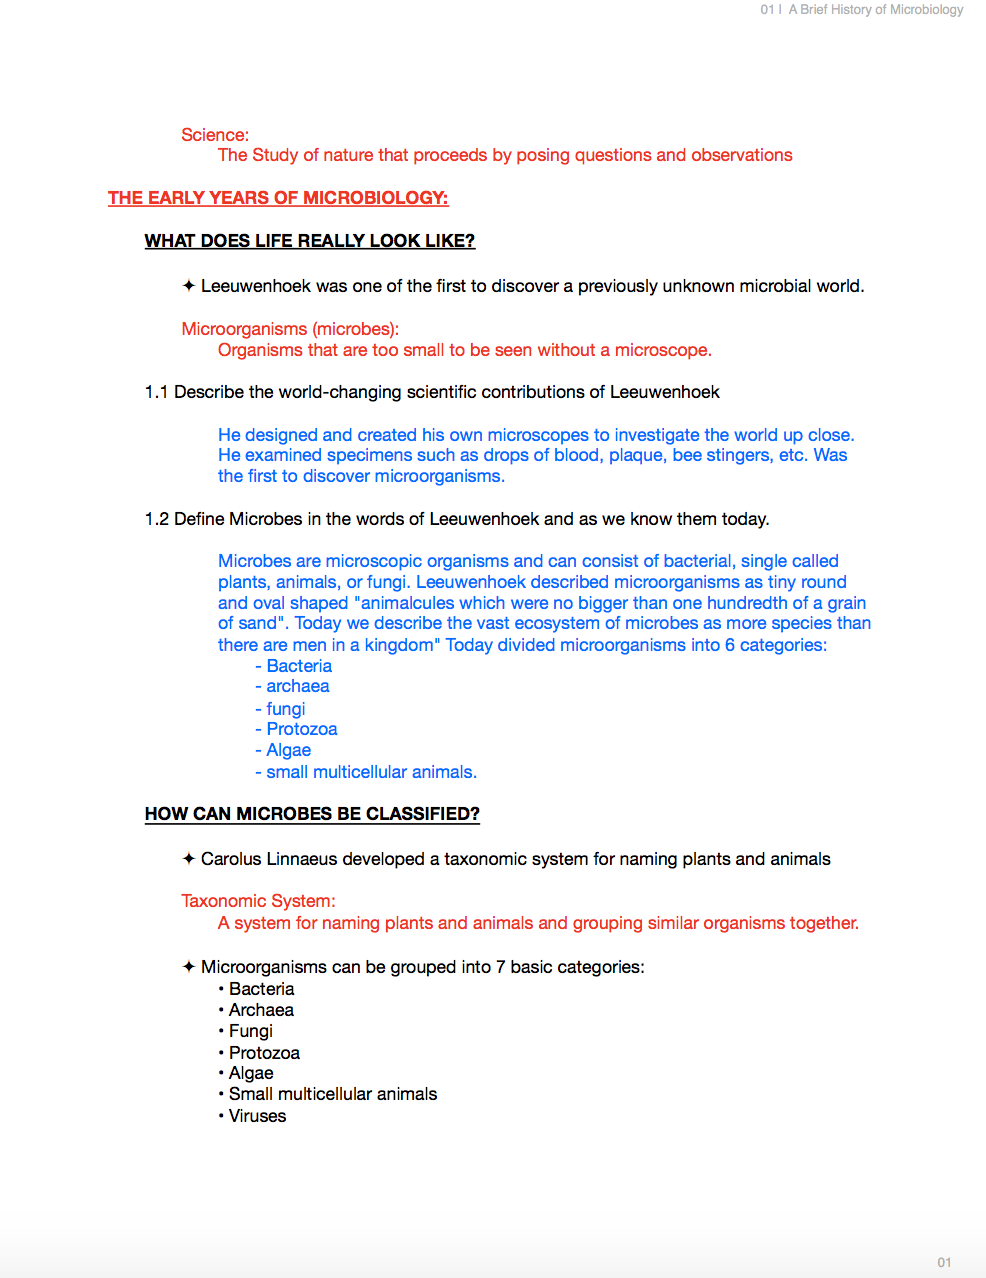 BIO229 - Microbiology Notes - NoteXchange